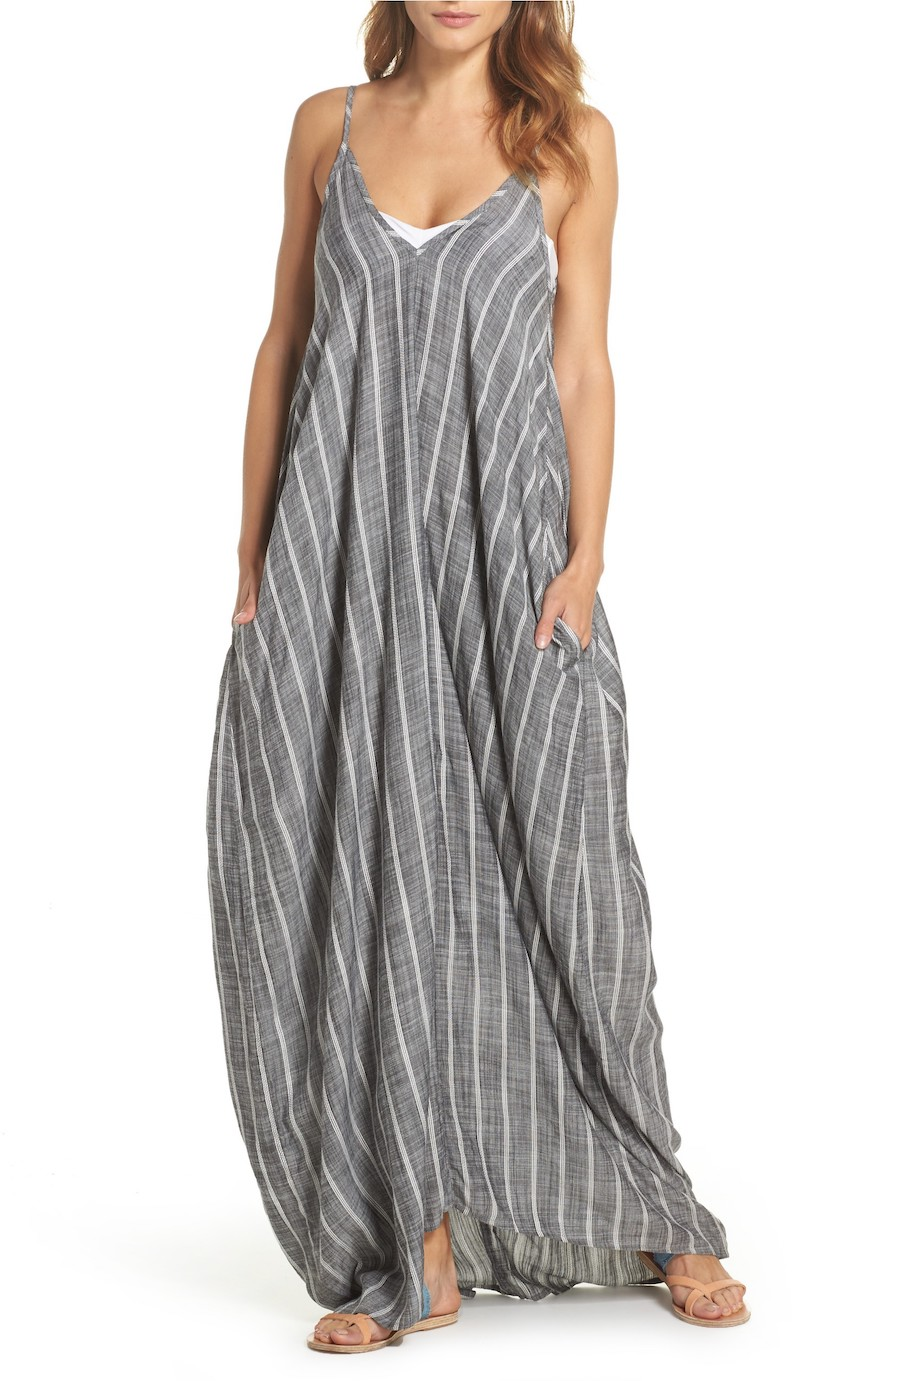 Cool pool coverups for moms: Maxi Dress by Elan